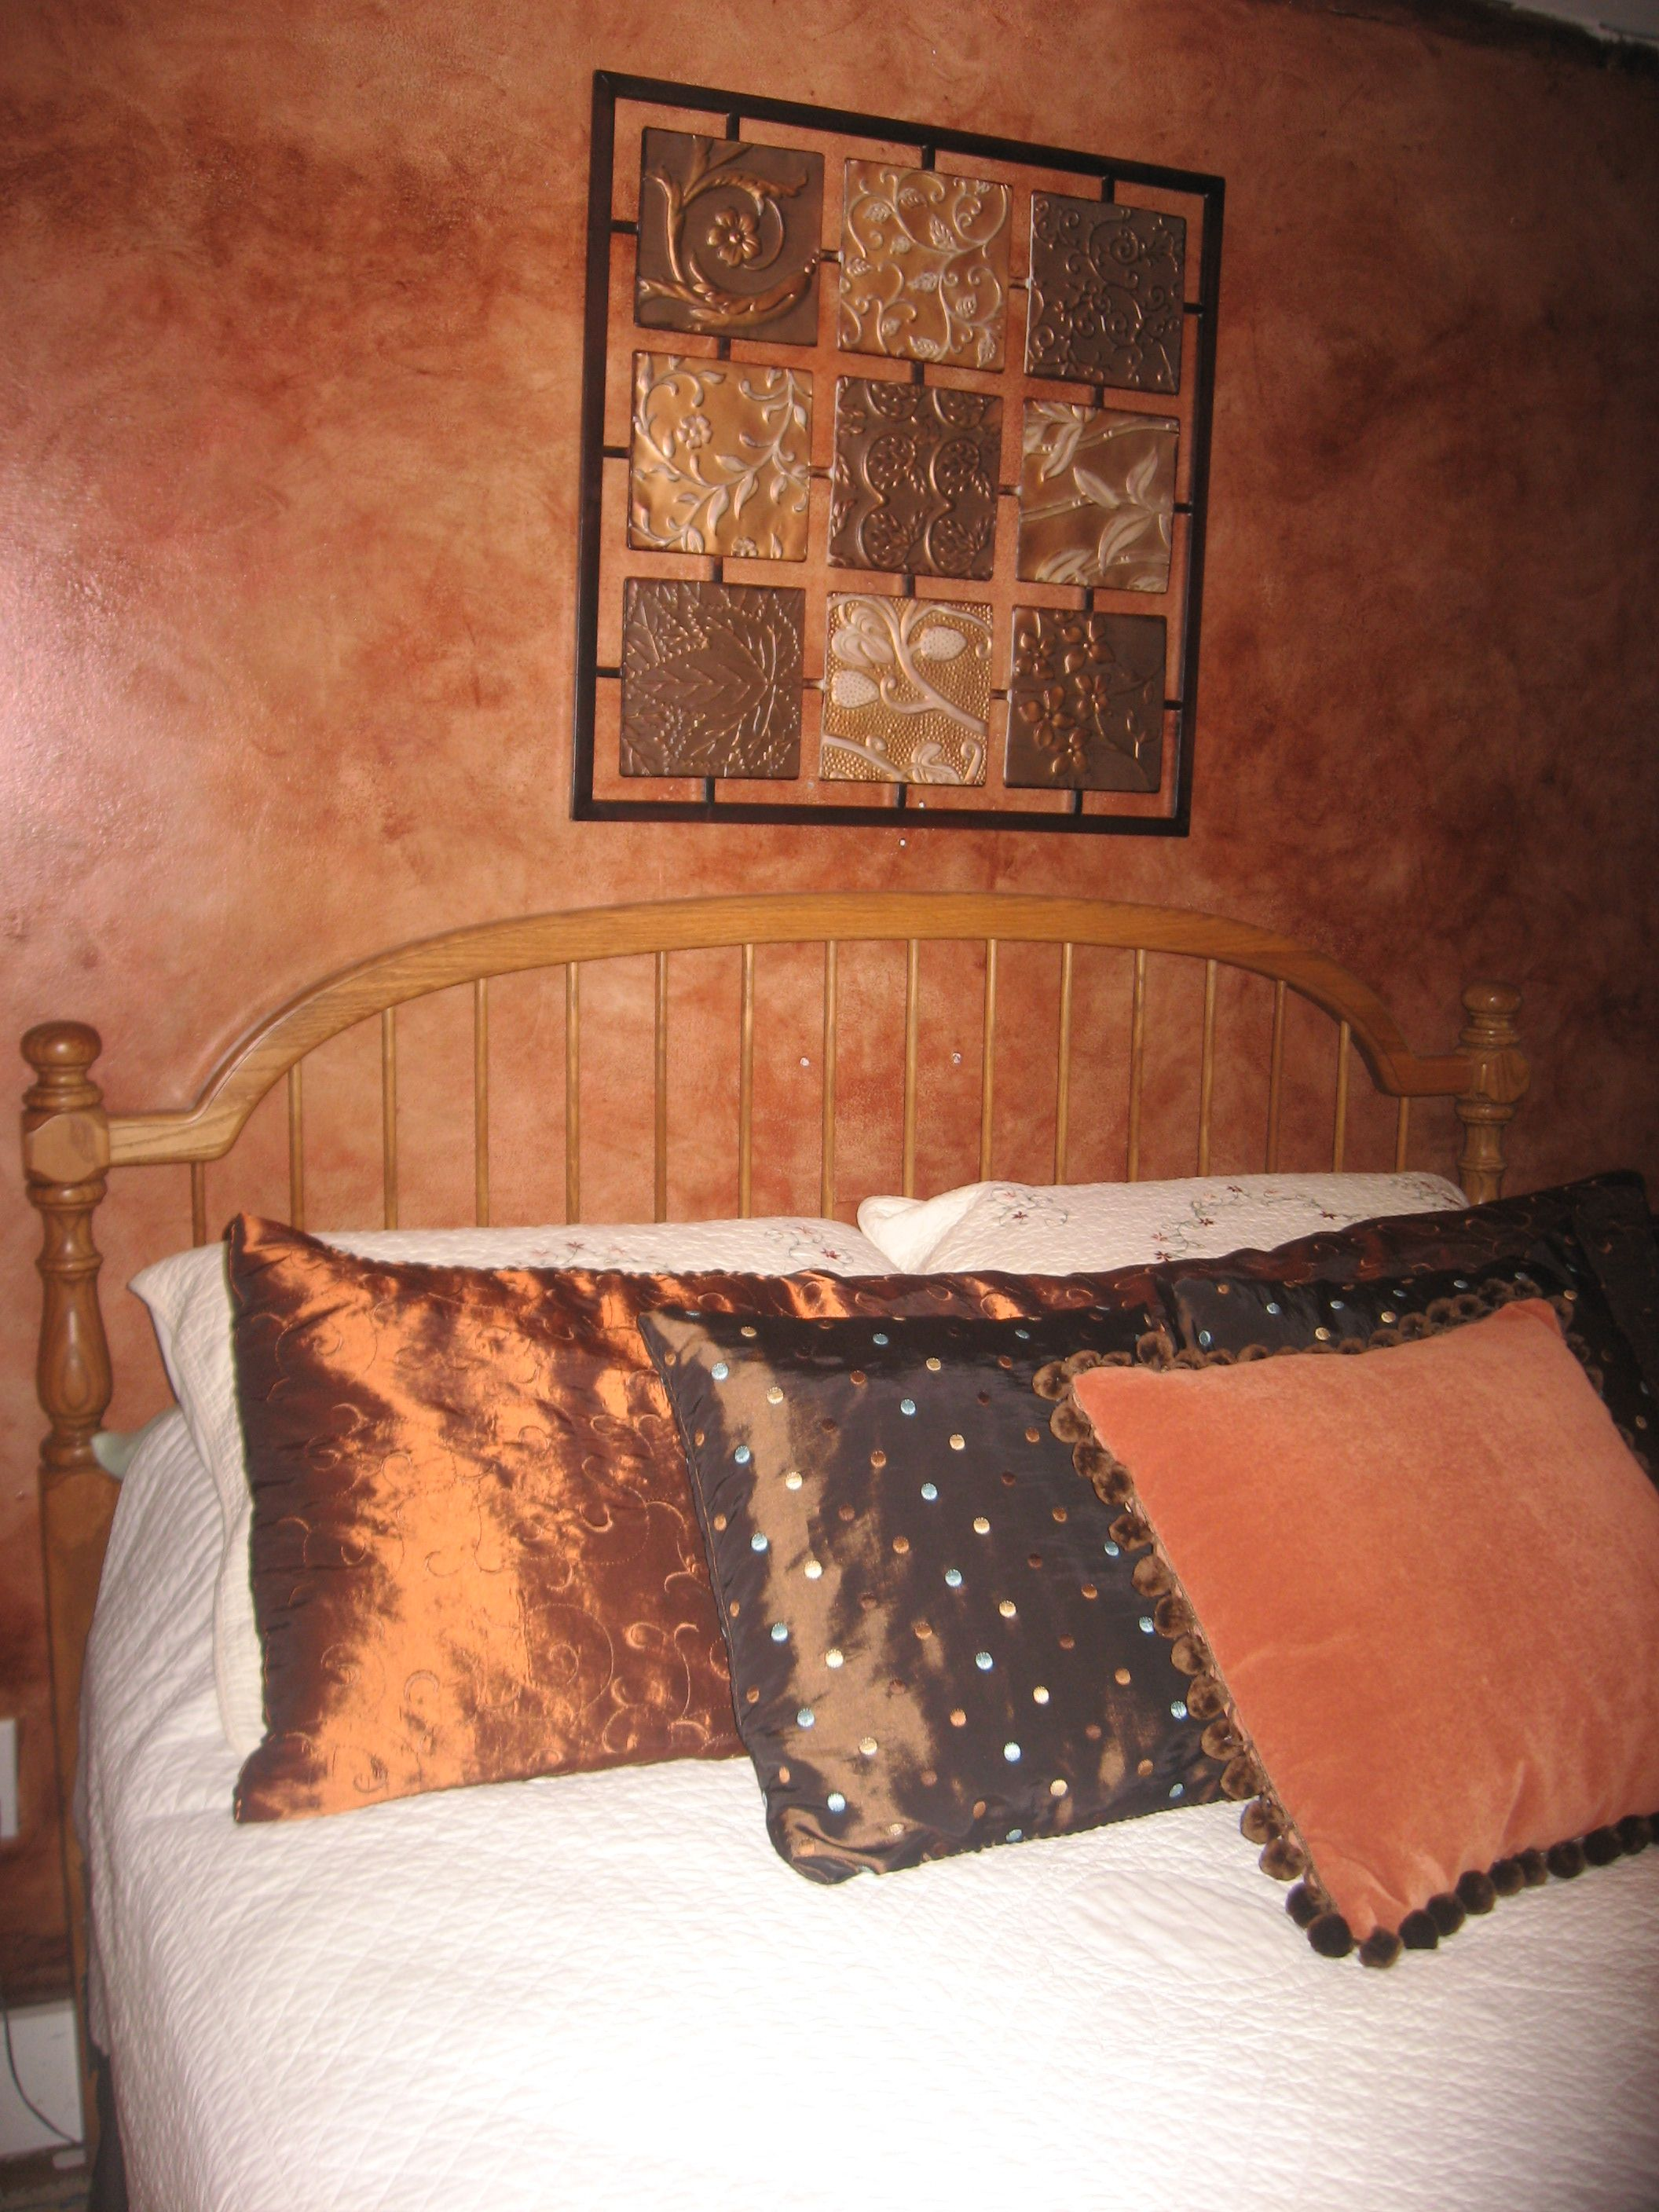 Sponge Painted Accent Wall Topped With a Coat of Stain Gives It A